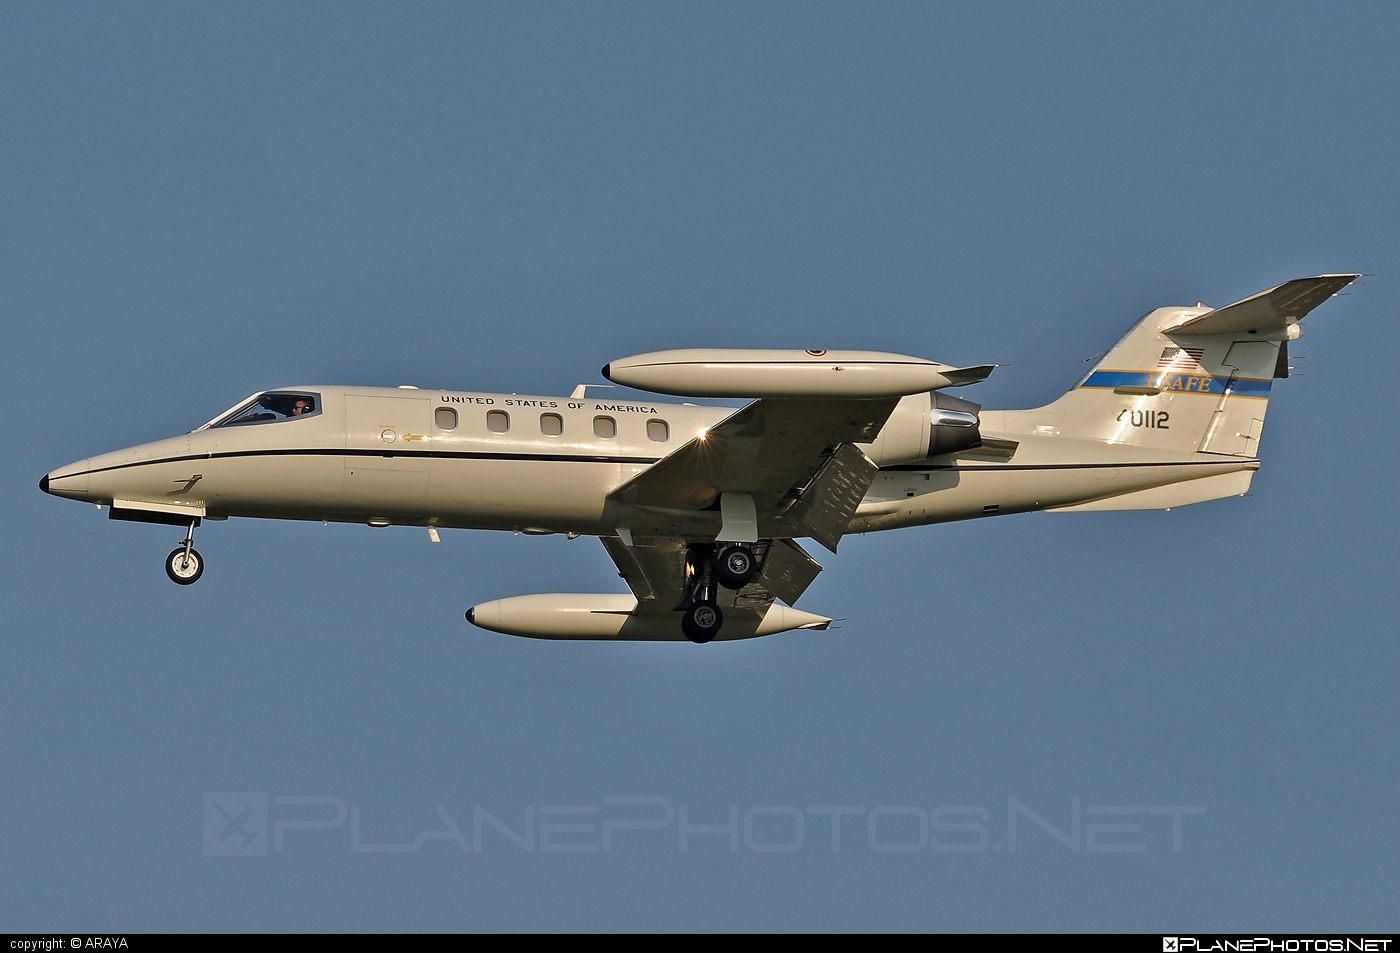 Gates Learjet C-21A - 84-0112 operated by US Air Force (USAF) #c21a #gateslearjet #learjet #learjet35 #learjetc21a #usaf #usairforce